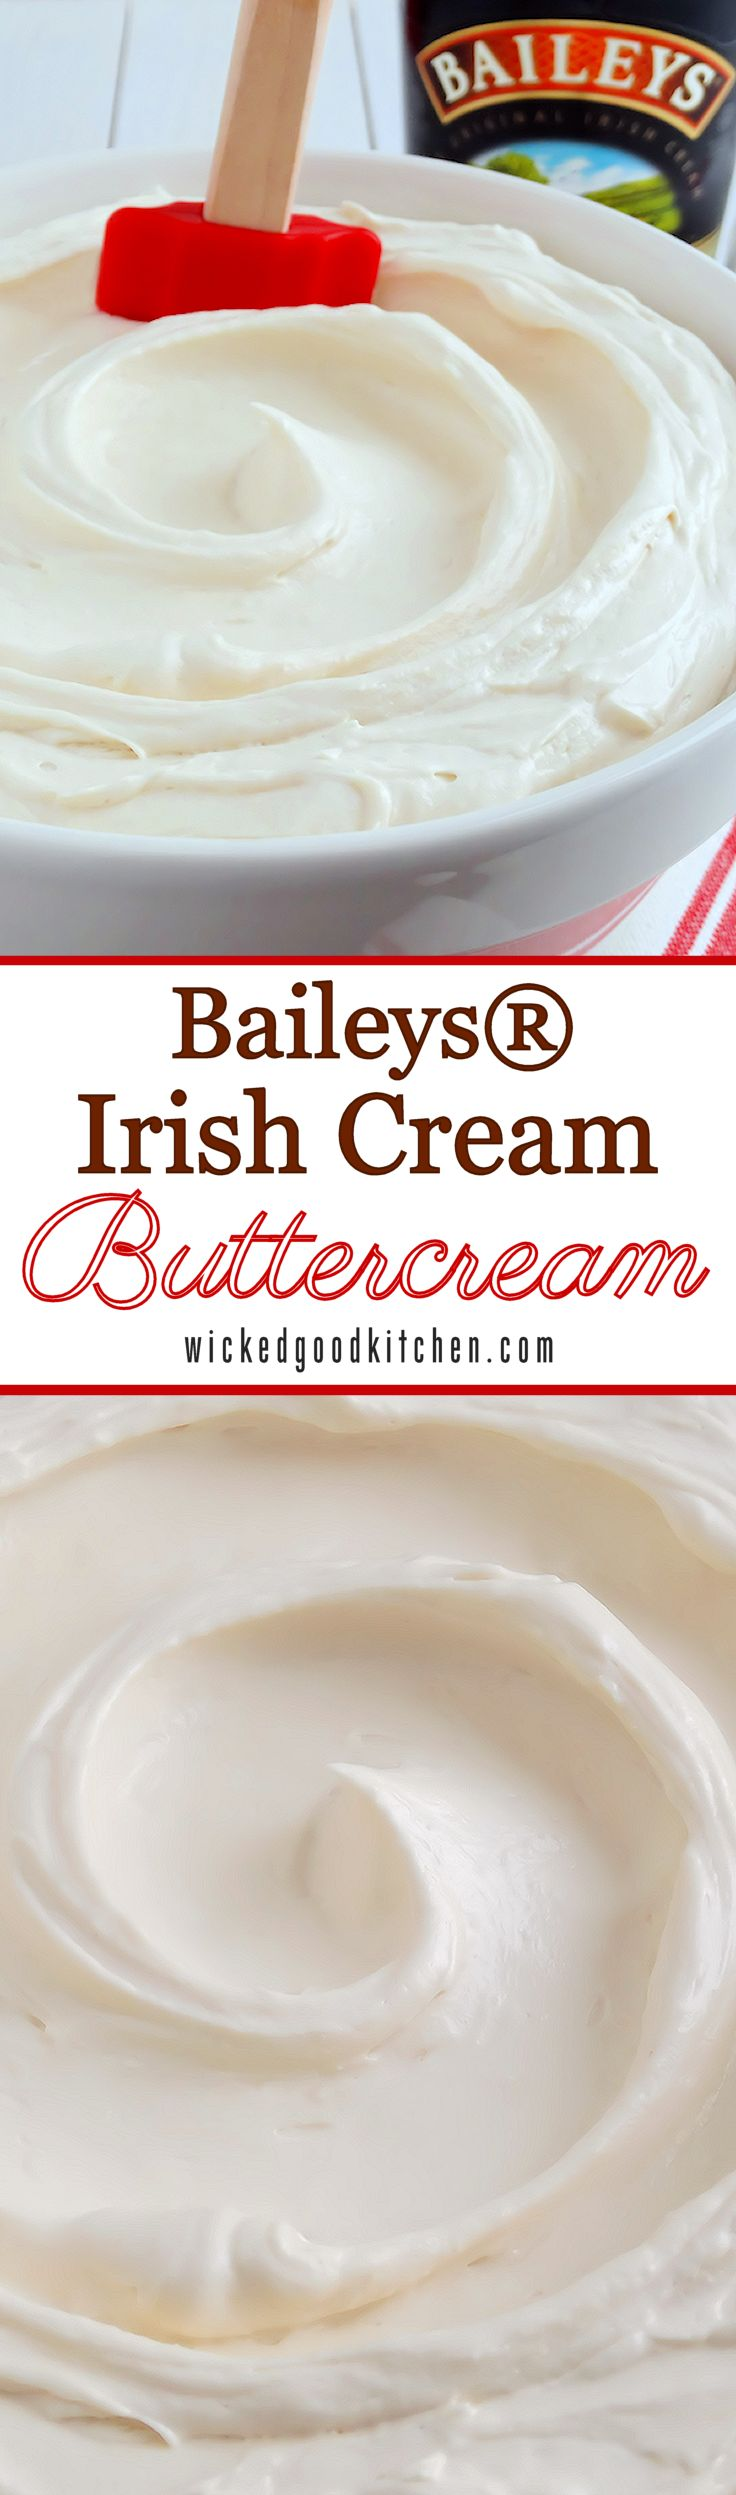 Best Ever Baileys® Irish Cream Buttercream - Creamy, silky and incredibly light, infused with plenty of Baileys® Irish Cream. Perfect for cakes and cupcakes!